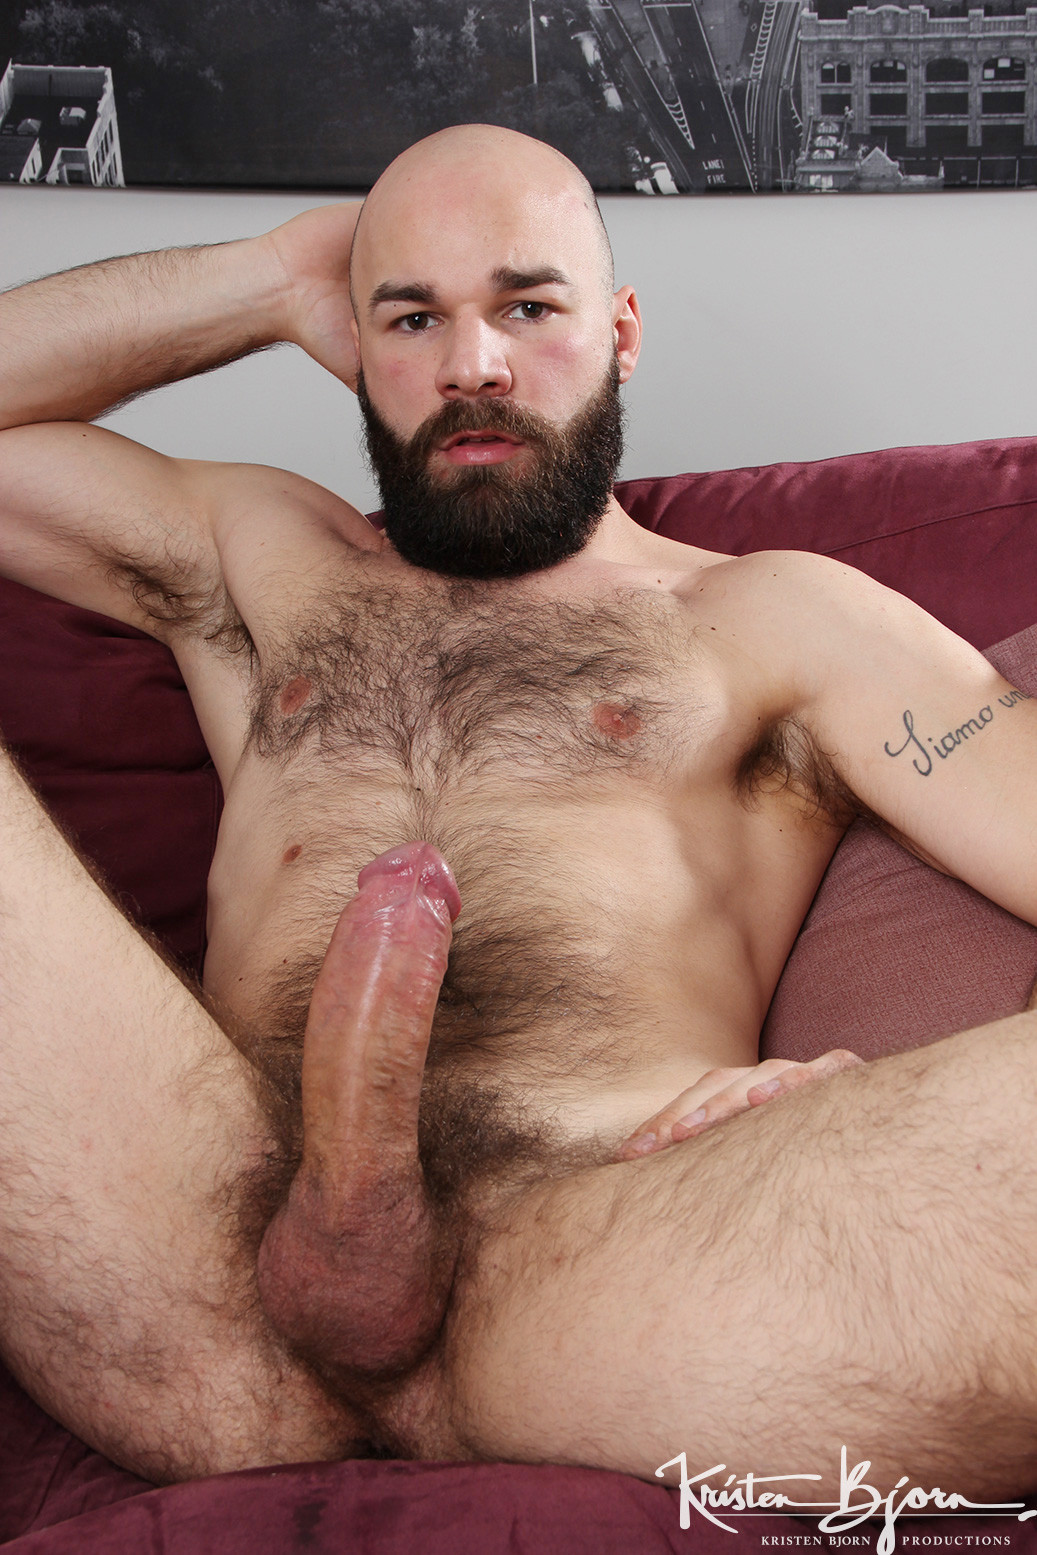 Robin naked gay sex first time the pledges